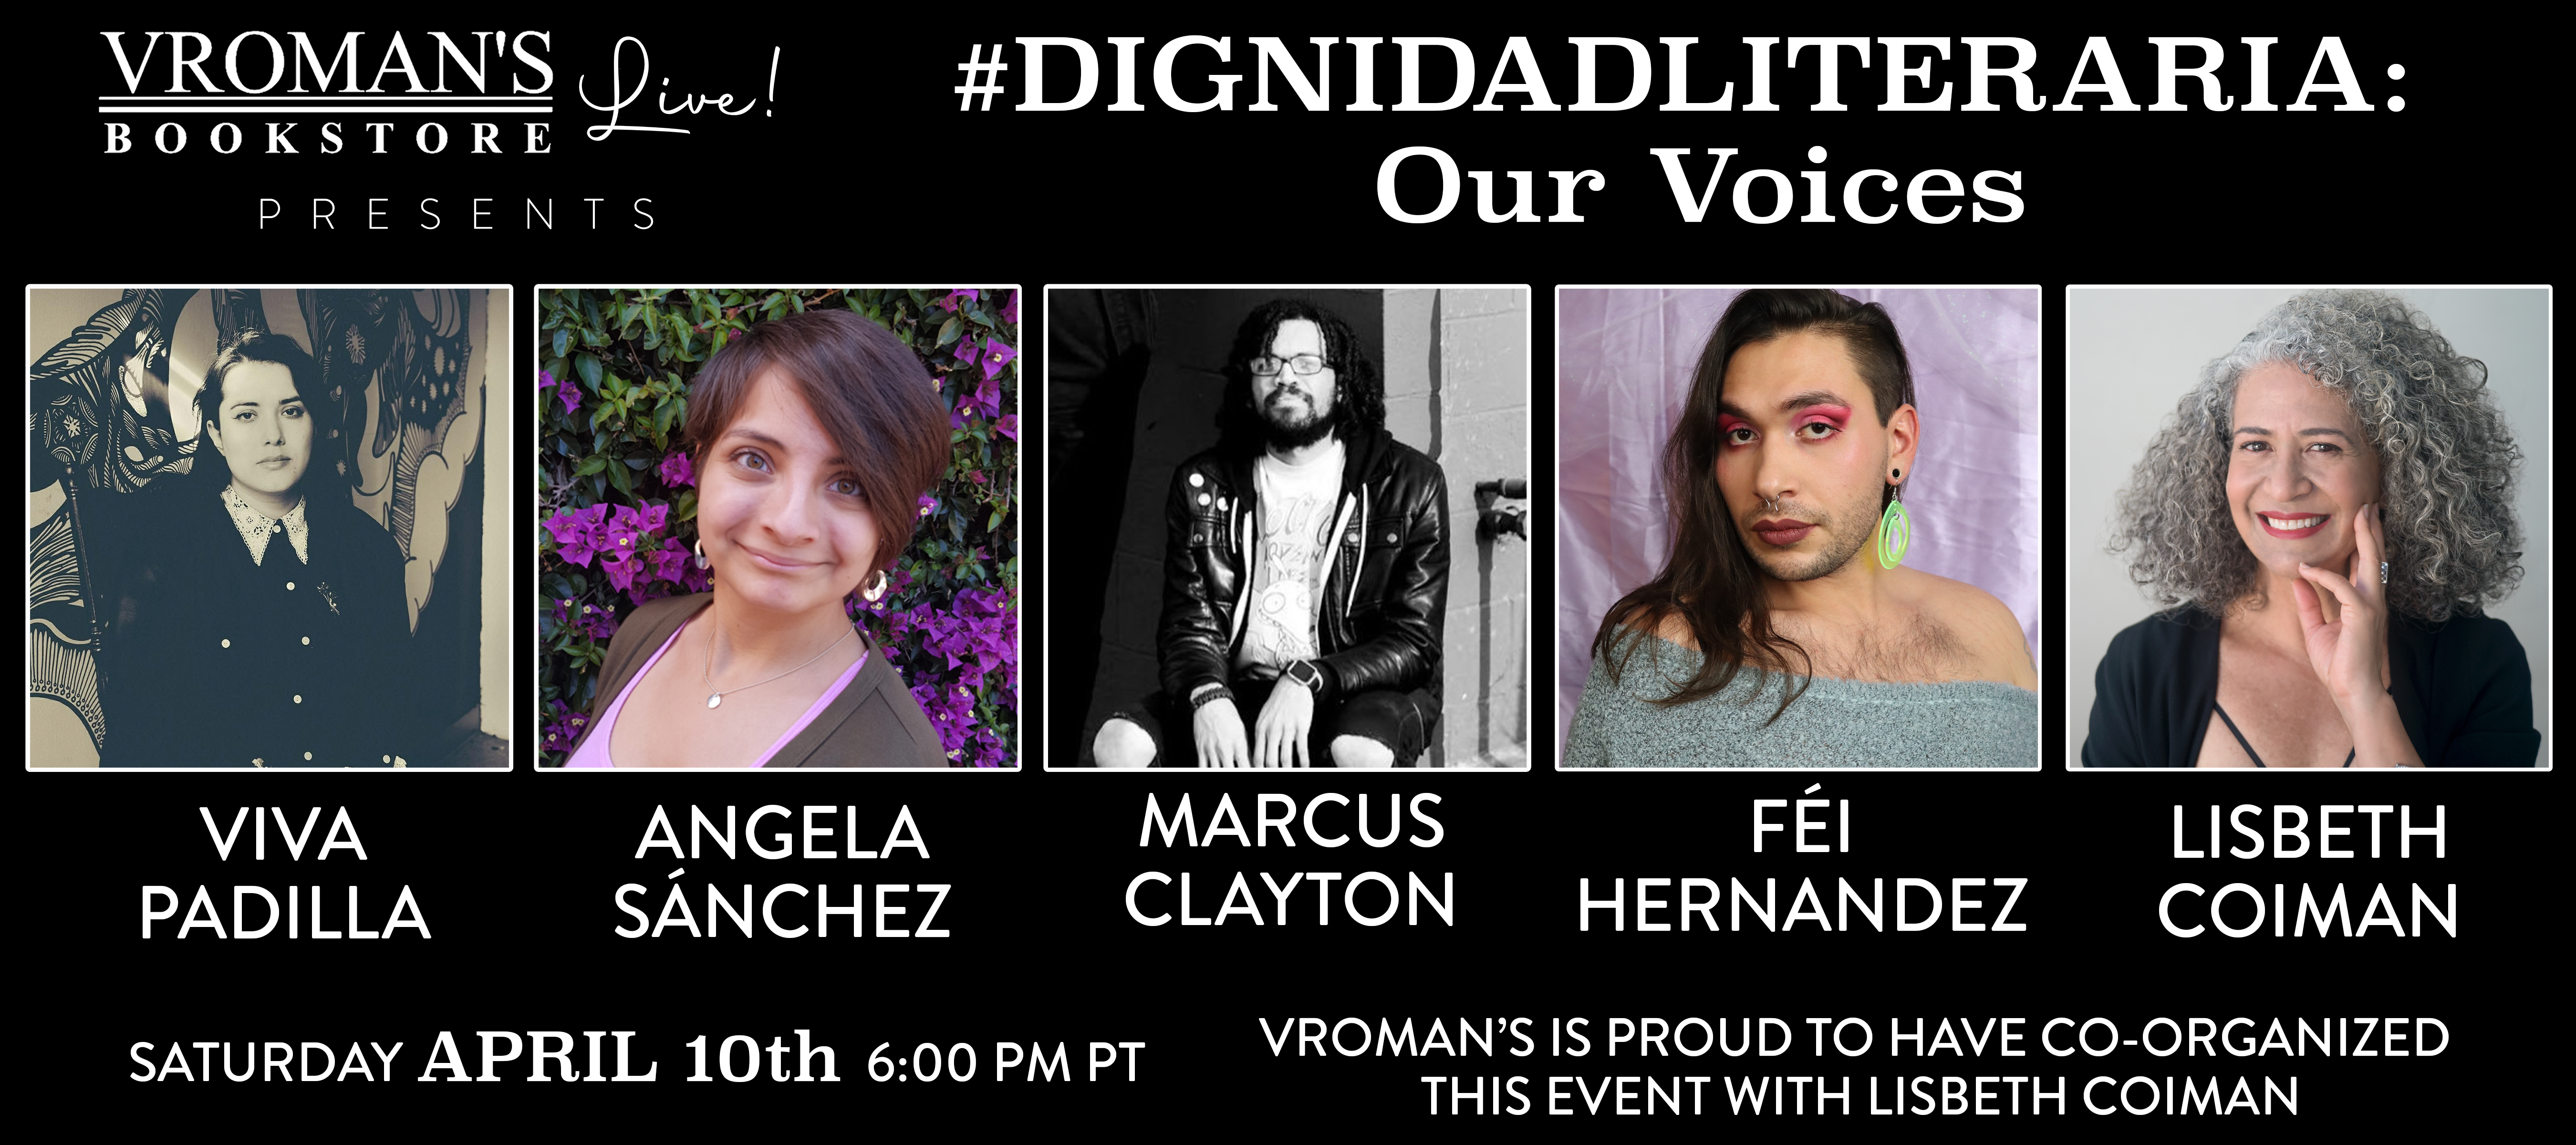 #DignidadLiteraria: Our Voices Panel featuring Viva Padilla, Angela Sanchez, Marcus Clayton, Fei Hernandez, and Lisbeth Coiman on Saturday April 10th at 6pm